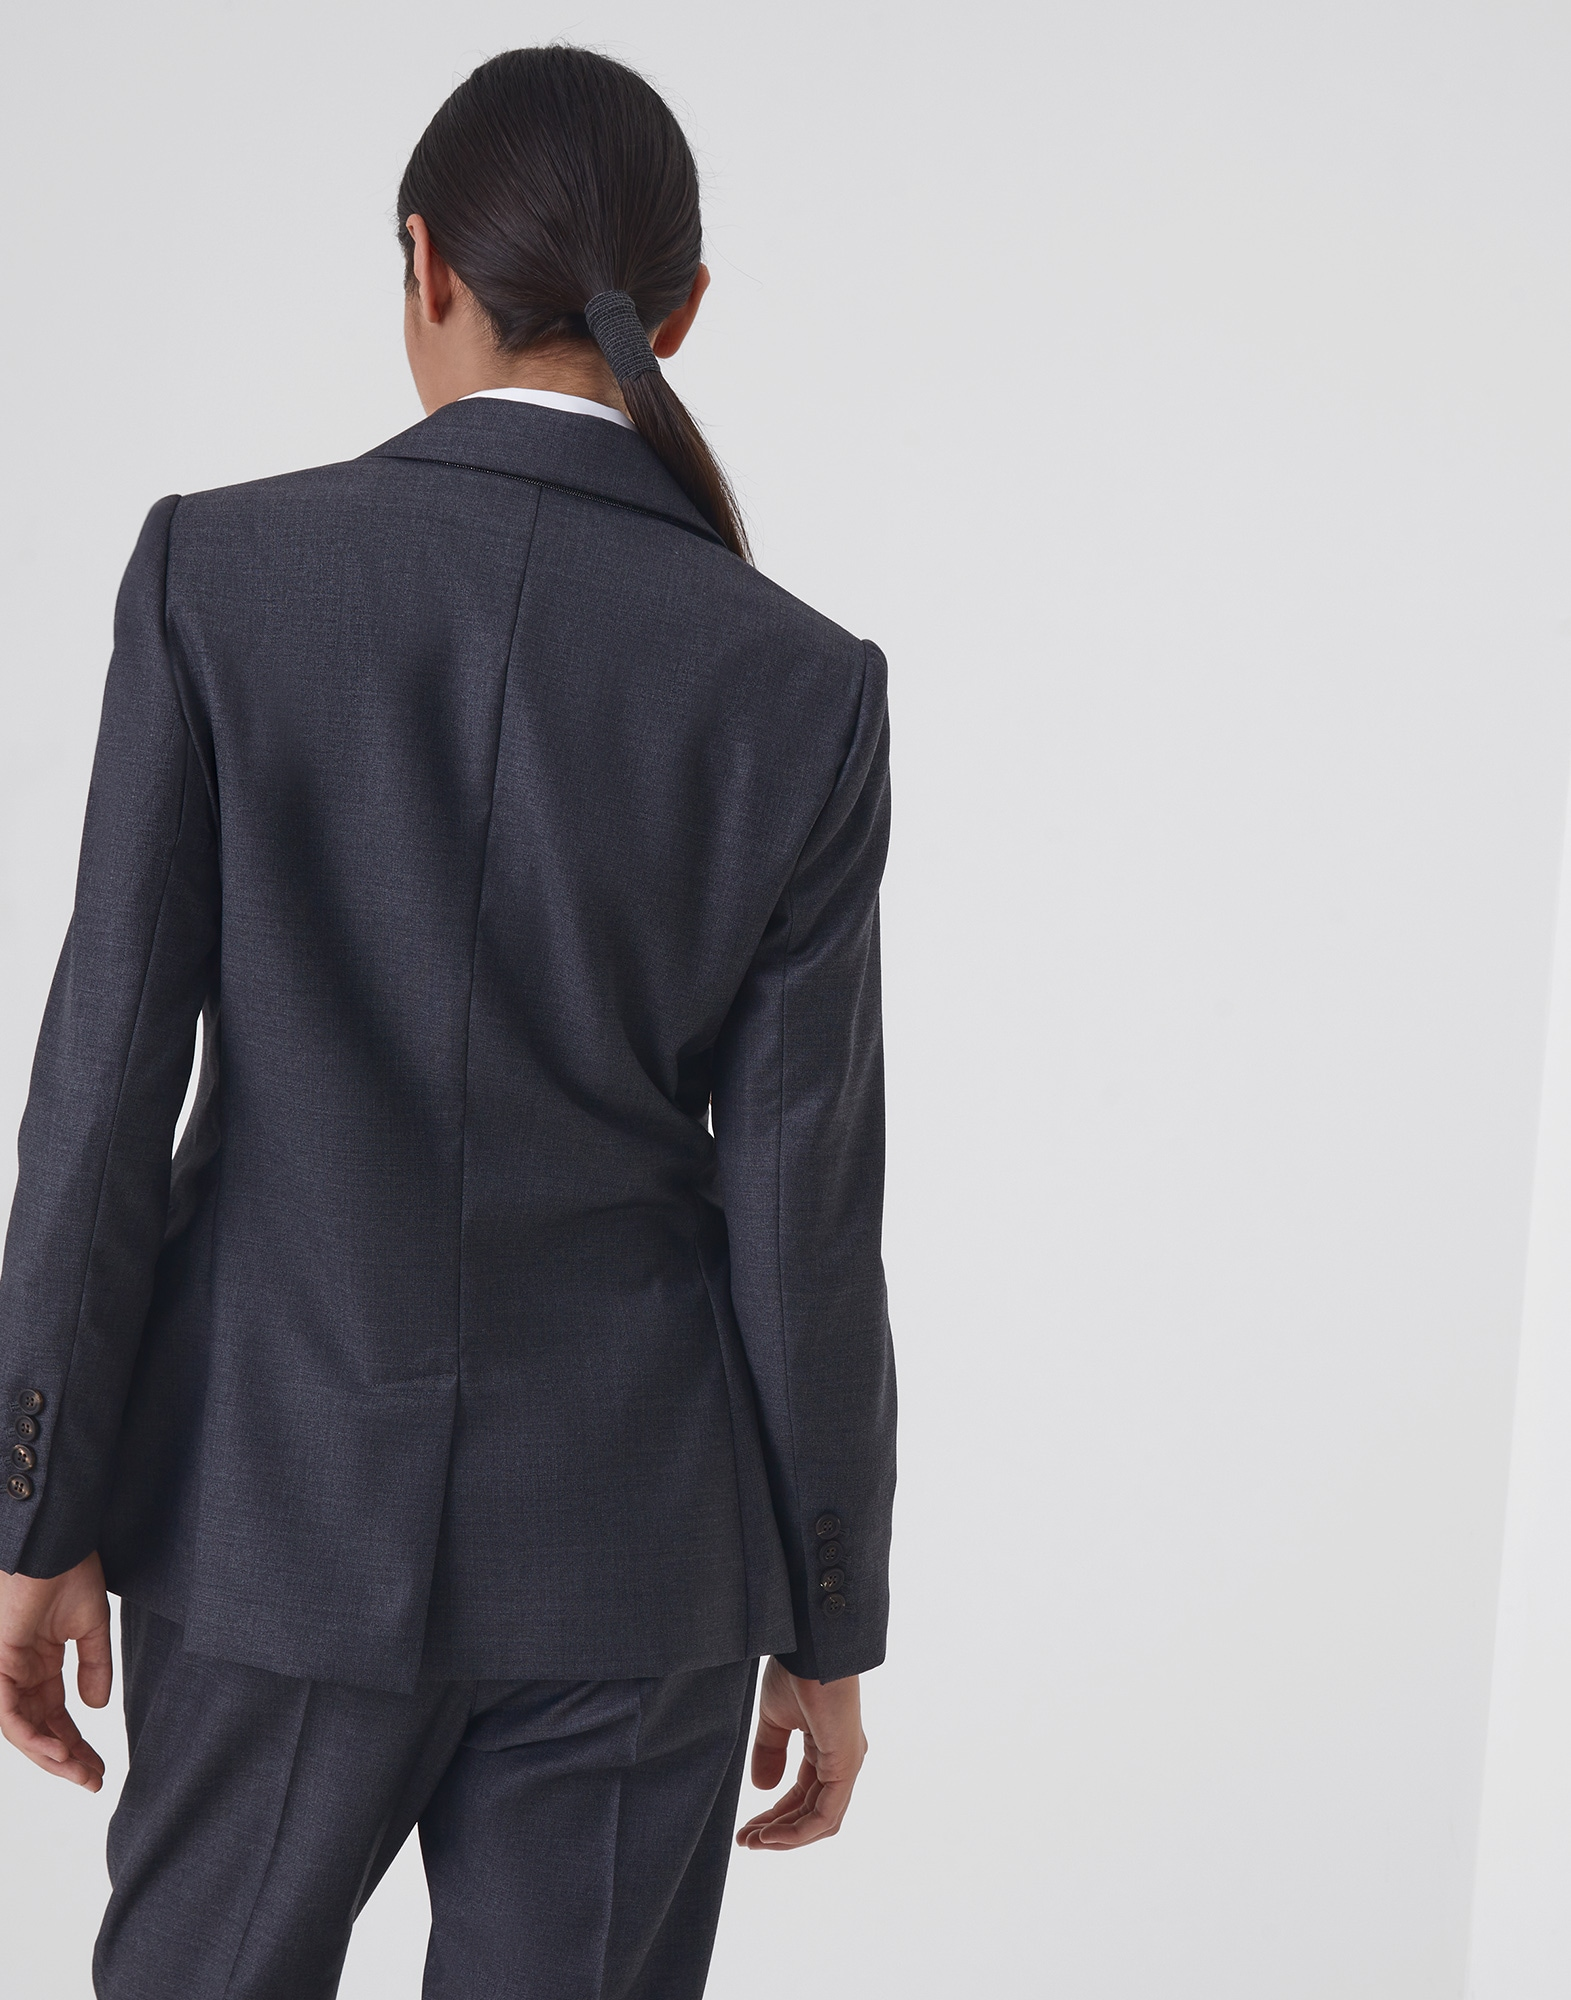 Blazer - Back view